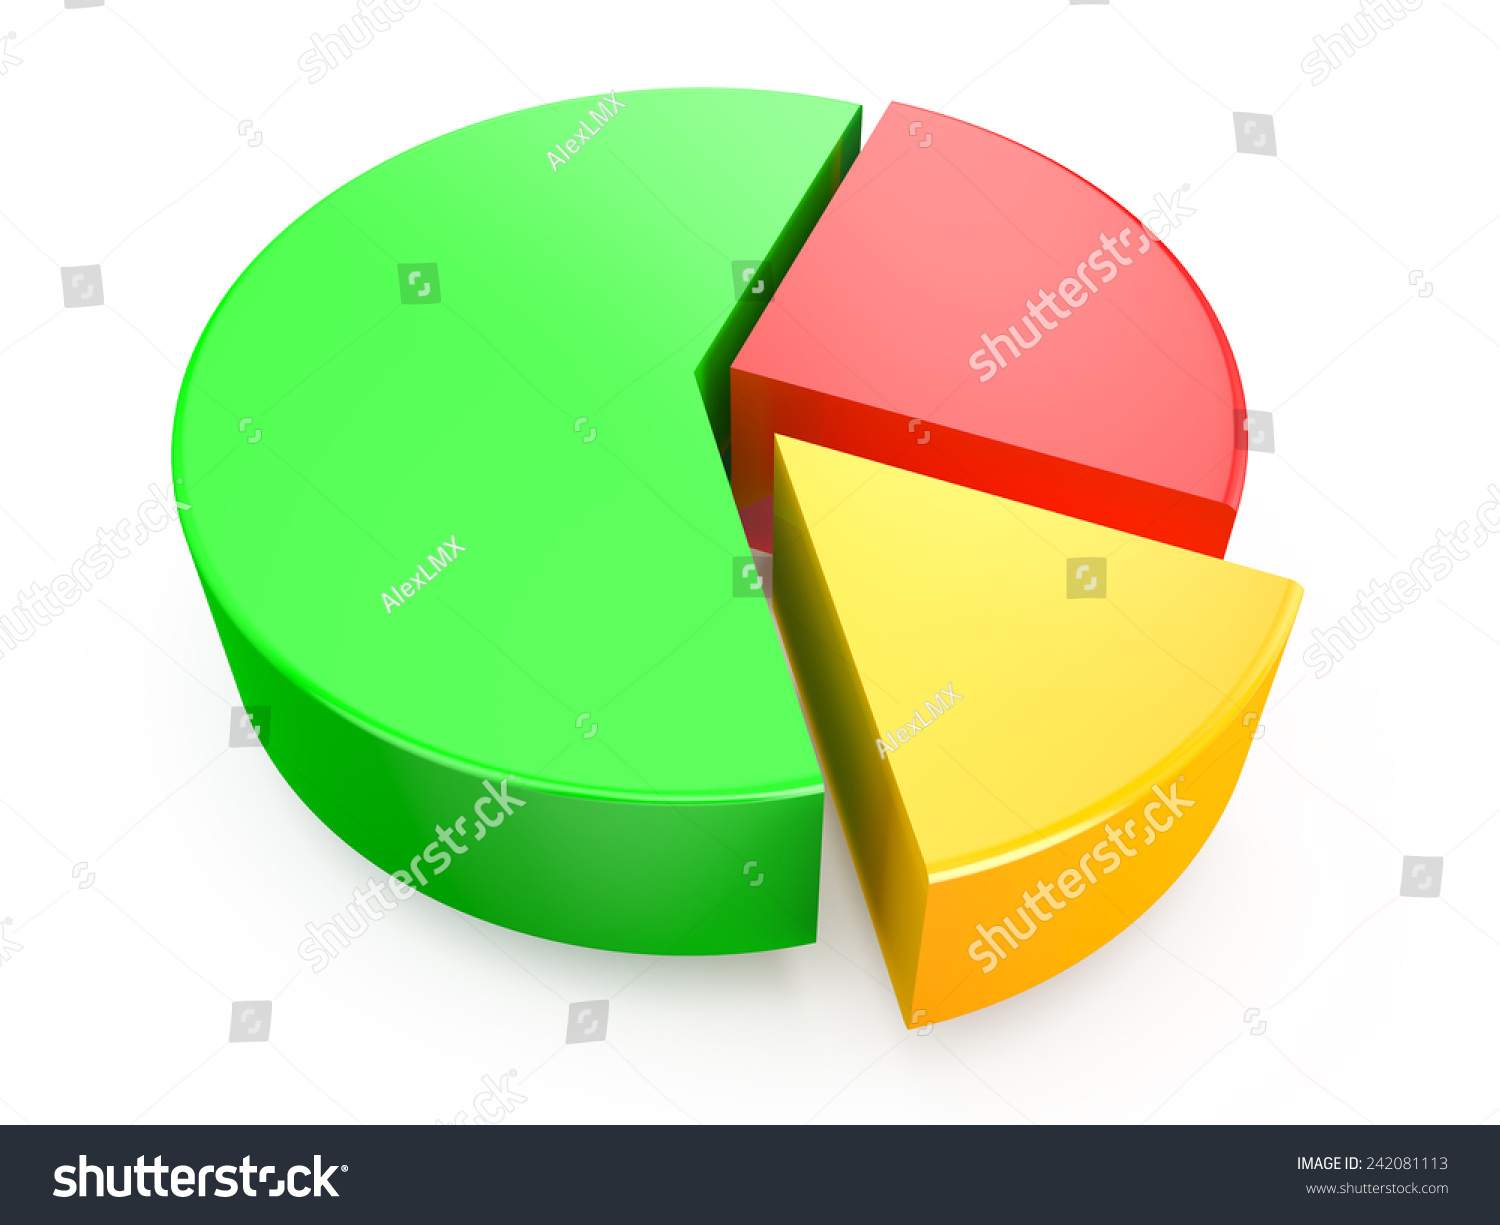 Excel pie chart colors image collections free any chart examples excel pie chart colors choice image free any chart examples colour pie chart gallery free any nvjuhfo Images